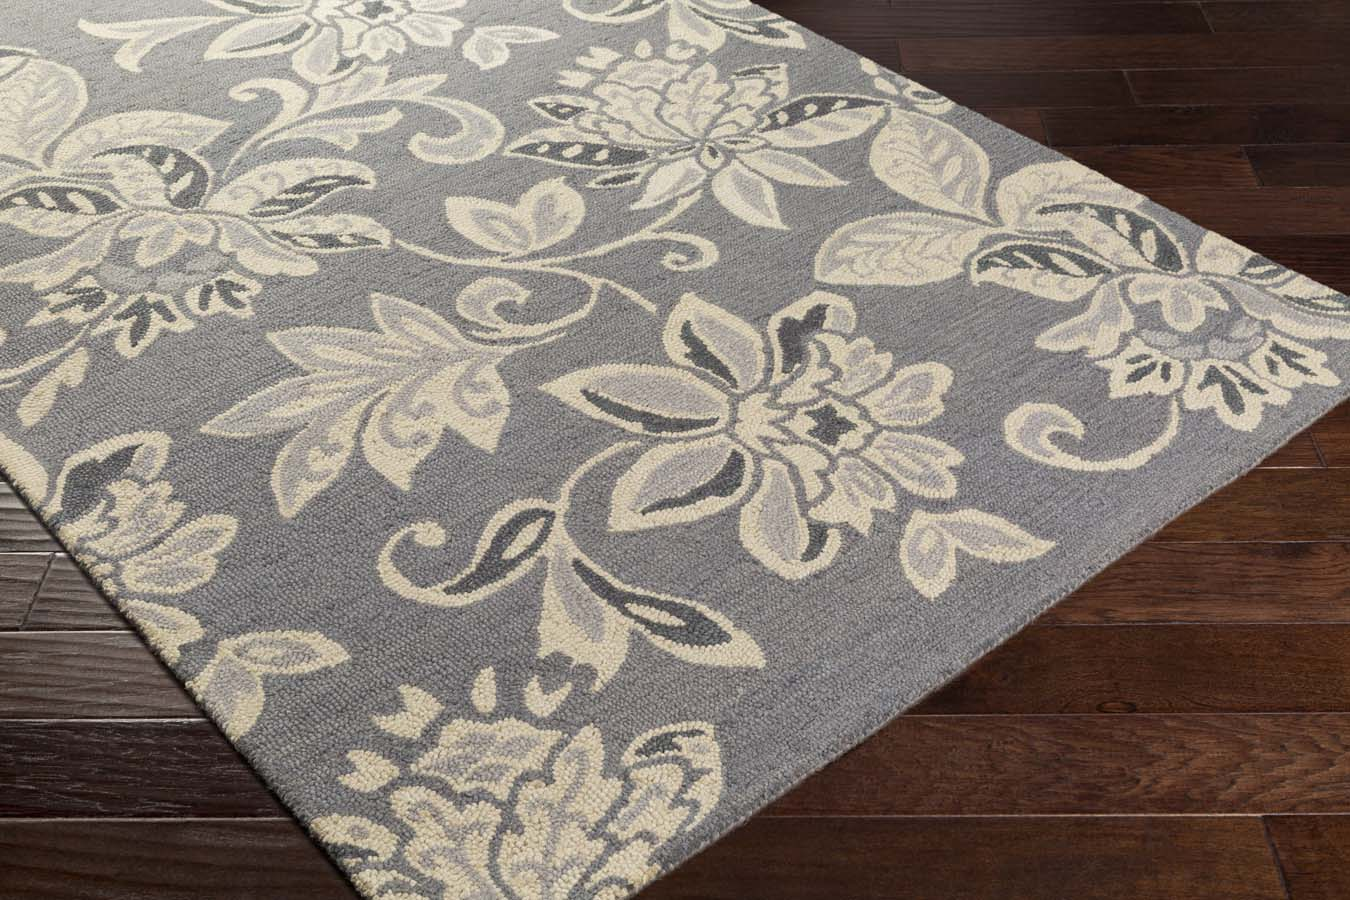 Artistic Weavers RHODES RDS-2317 Elsie Grey/Off-White Rug